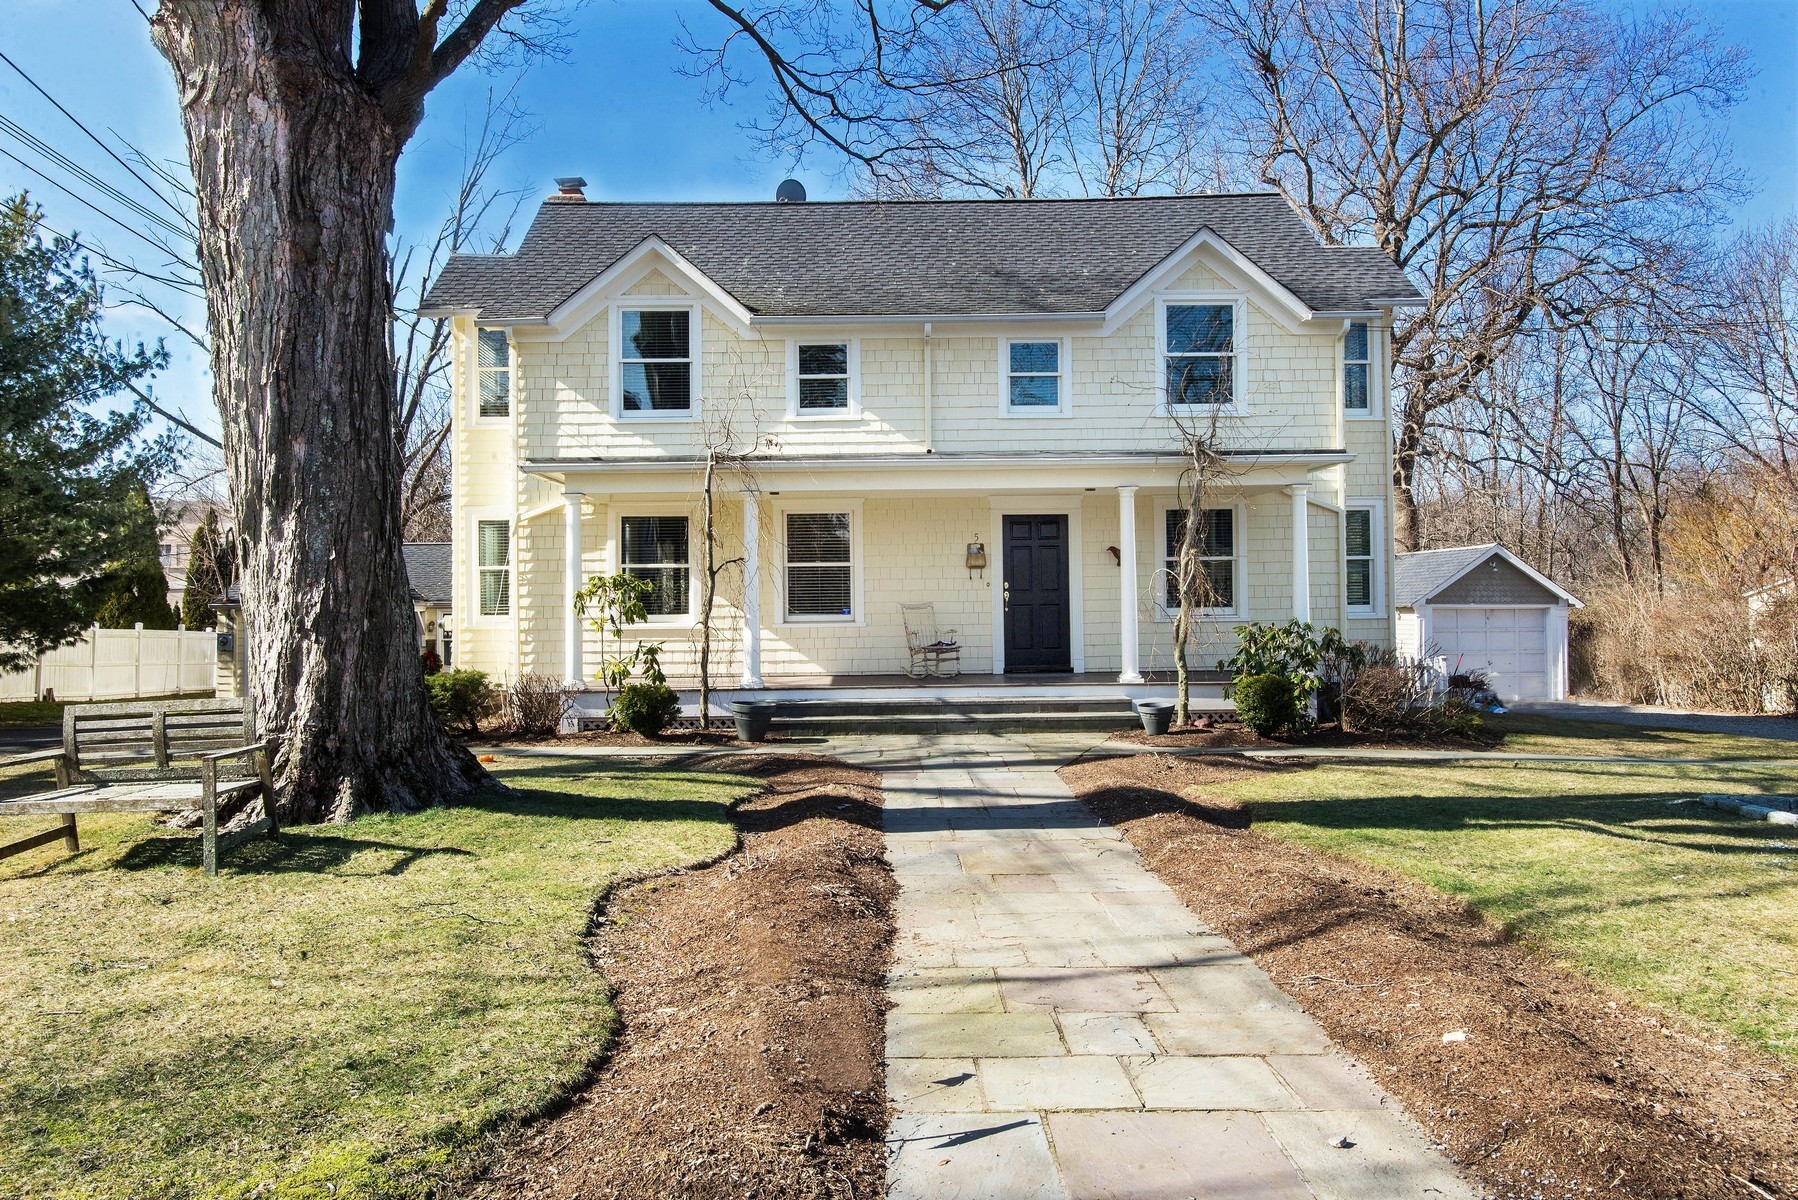 Vivienda unifamiliar por un Venta en In-town Sophistication 5 Mountain View Avenue Ridgefield, Connecticut, 06877 Estados Unidos